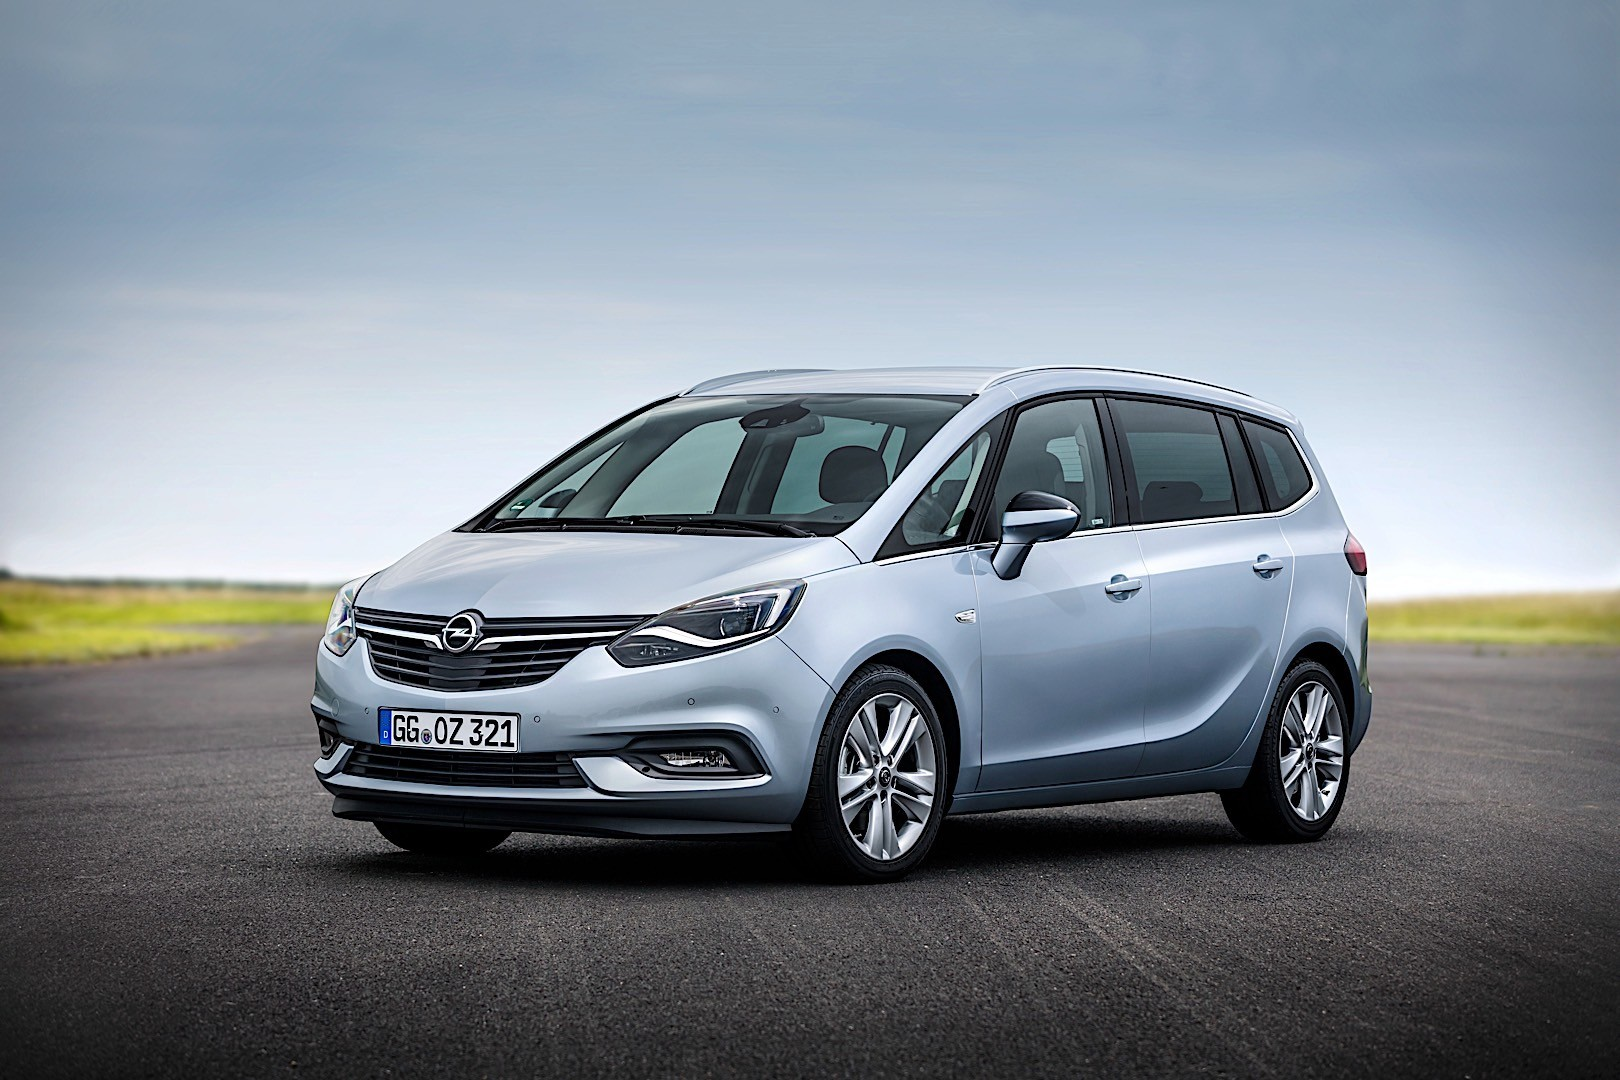 opel zafira specs photos 2016 2017 2018 2019. Black Bedroom Furniture Sets. Home Design Ideas